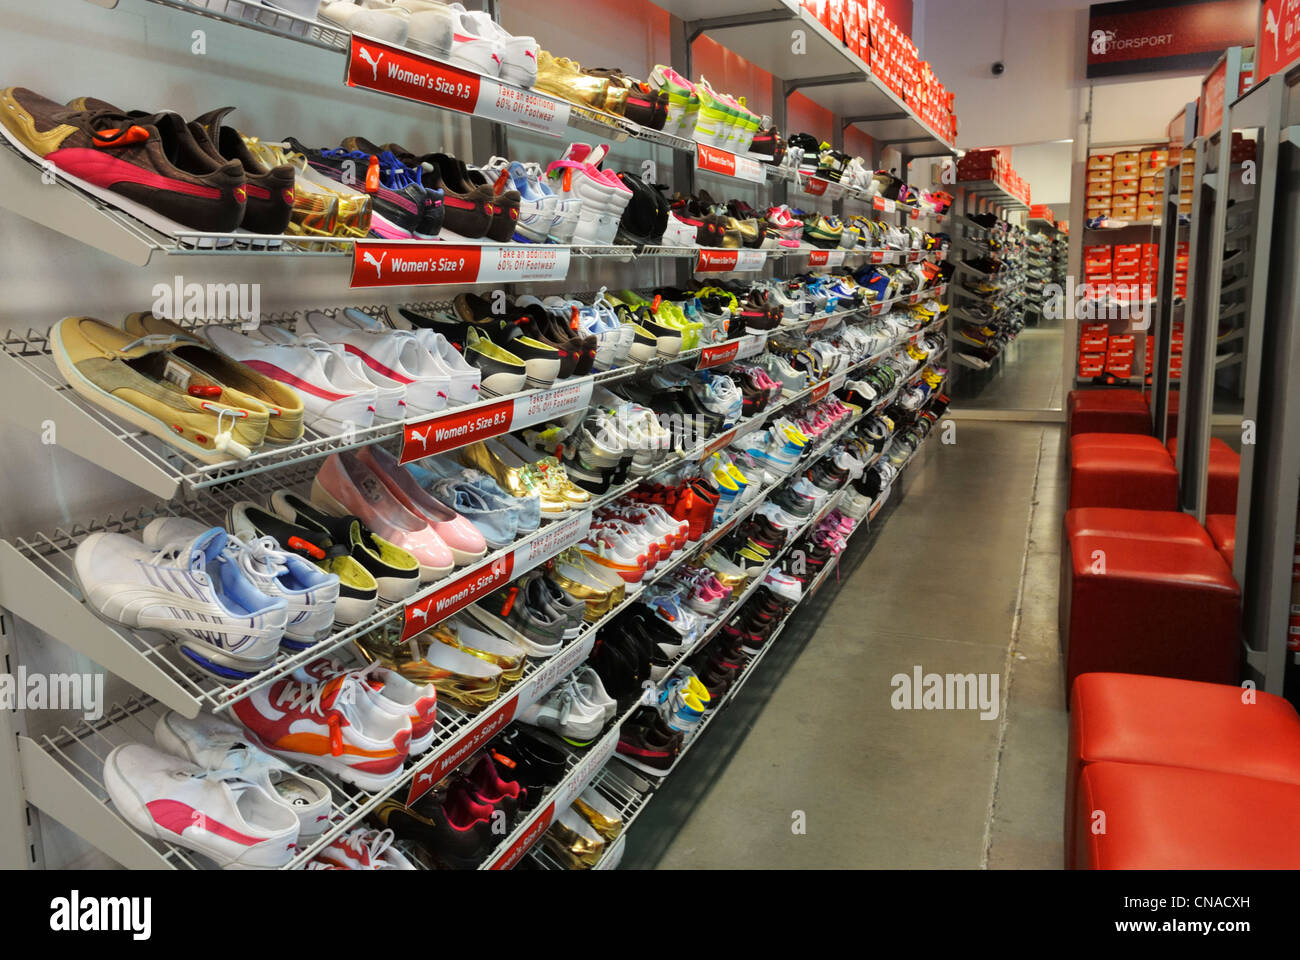 Puma Shoes High Resolution Stock Photography and Images - Alamy